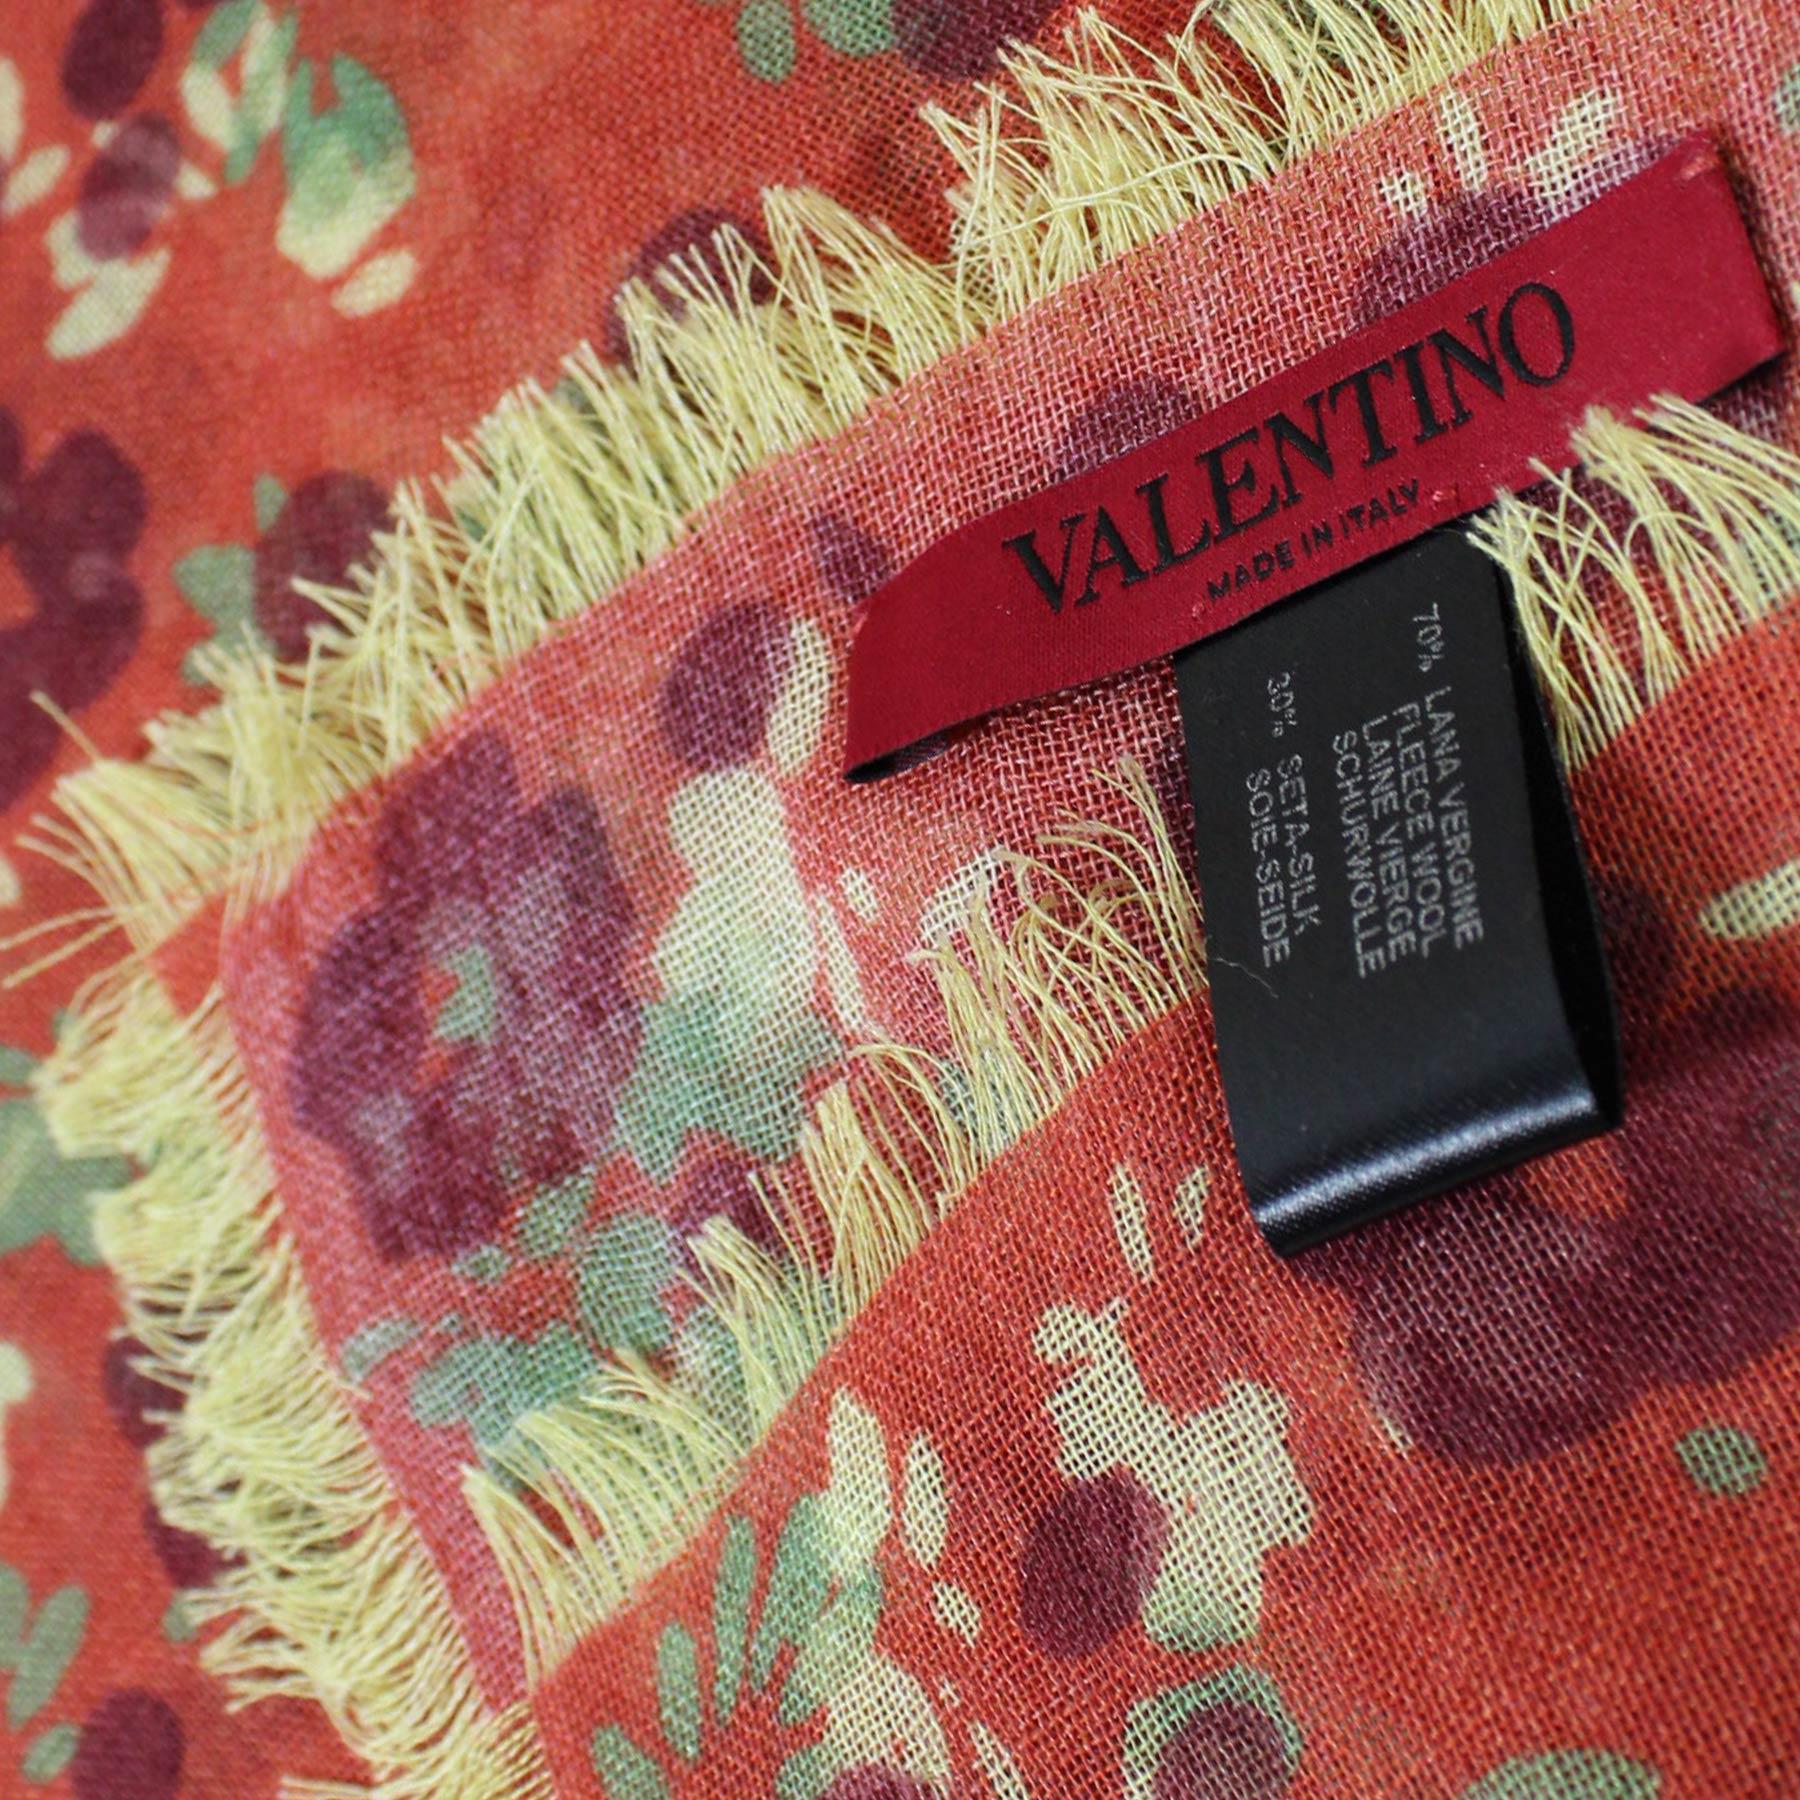 Valentino Scarf Rust Orange Floral Wool Silk - Extra Large Square Wrap SALE